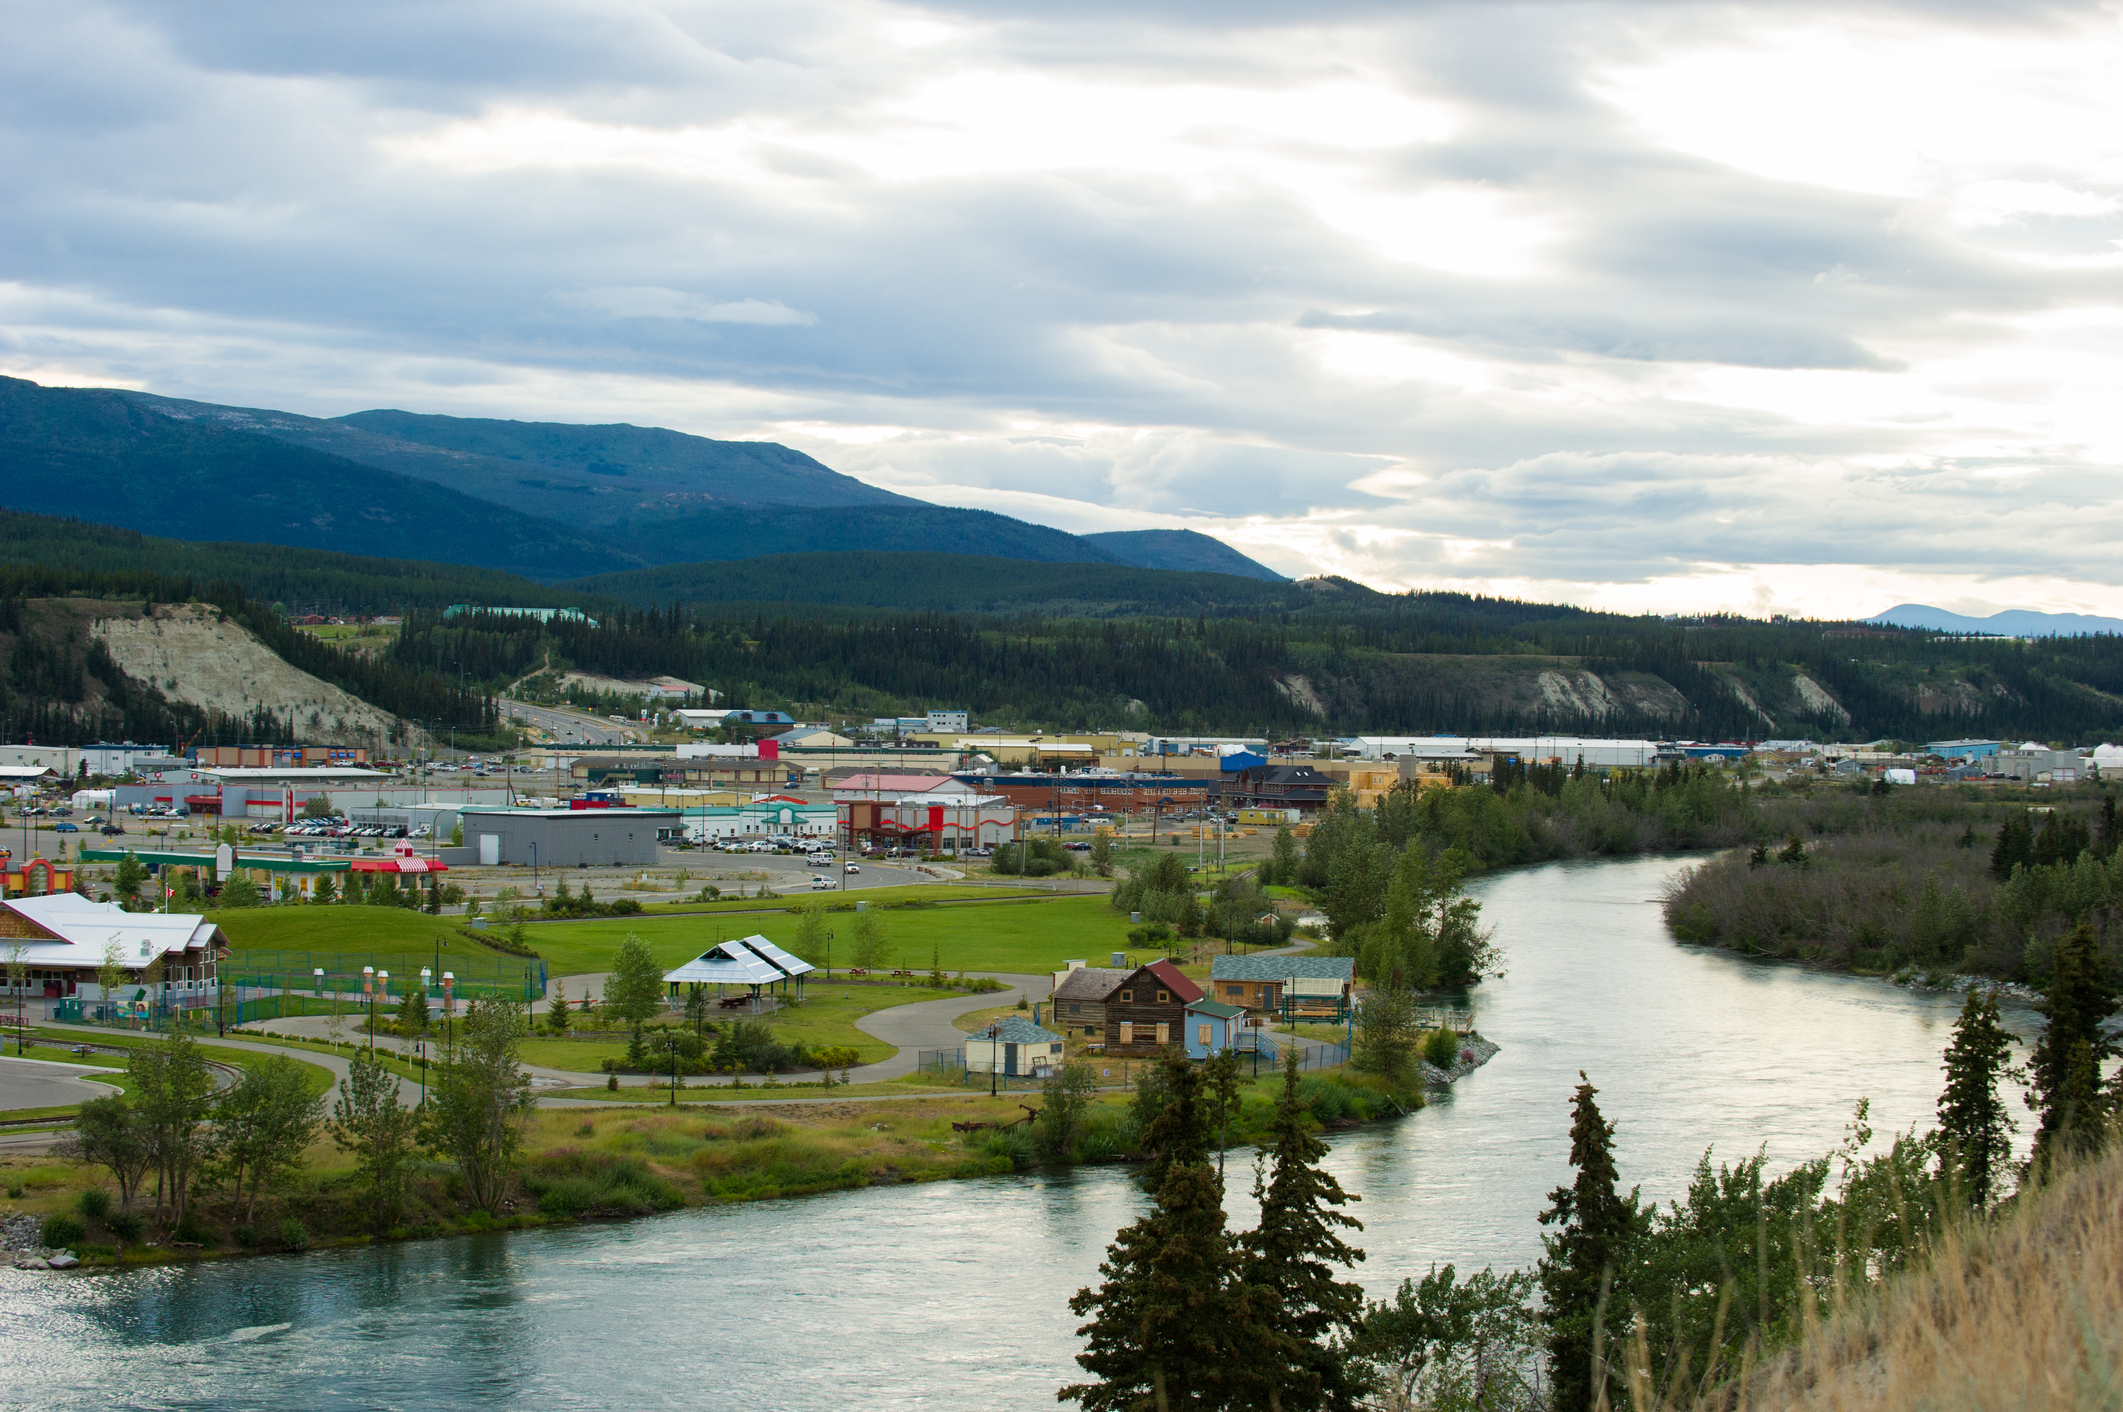 Frontier city of Whitehorse along the Yukon River